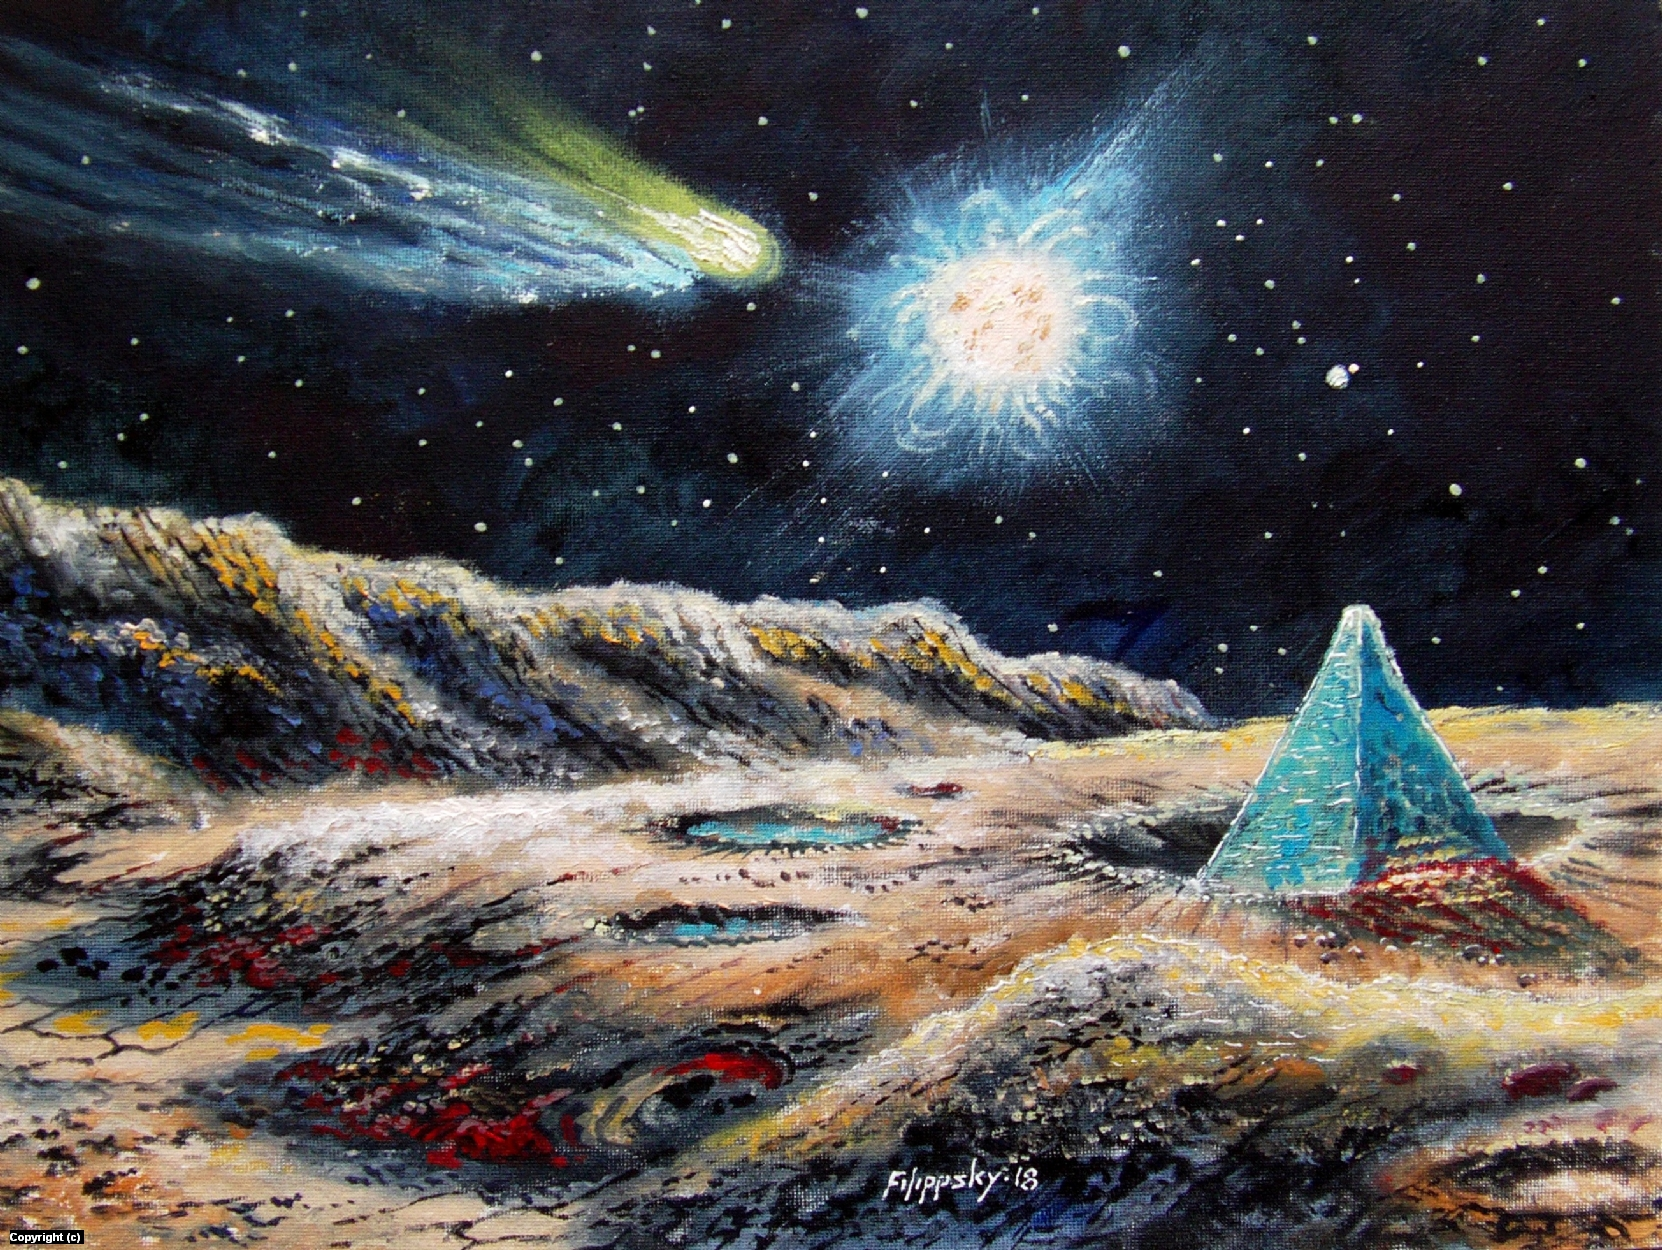 Landscape of Mercury with a comet and a blue pyramid. Artwork by Victor Filippsky